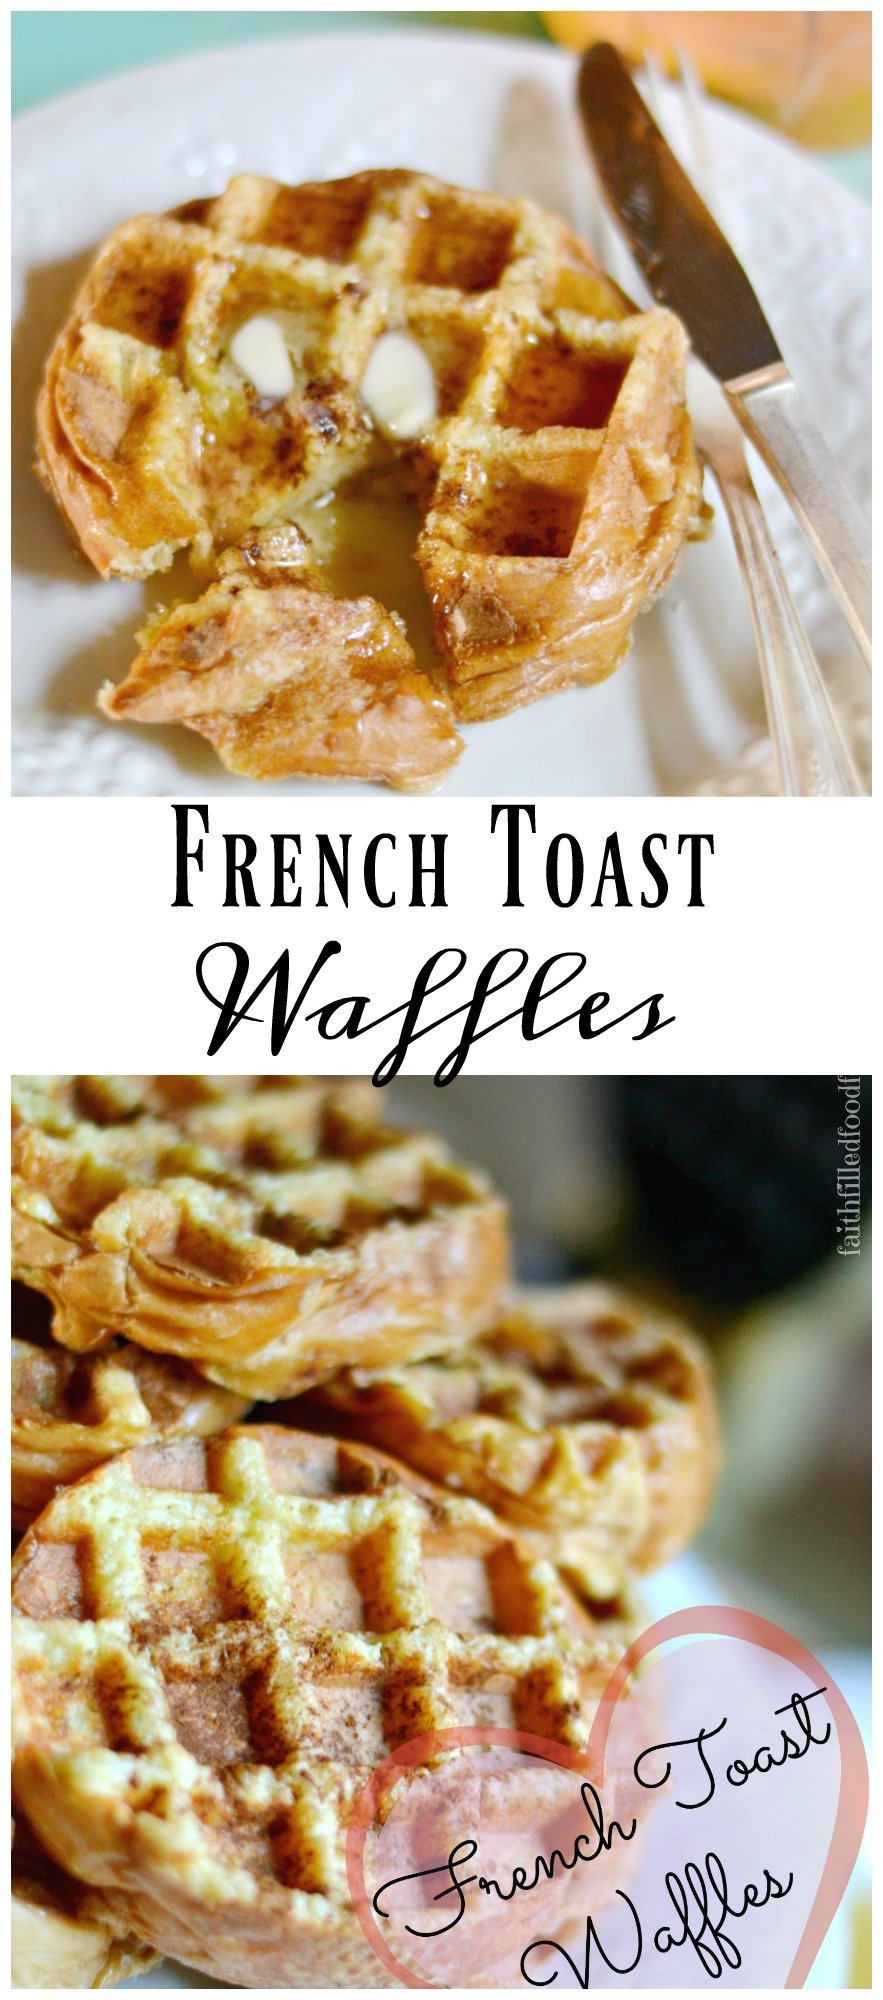 A super easy fun and delicious breakfast recipe that combines the flavors of french toast and waffles. This is a great make ahead / prep ahead meal. Can be frozen!  #mealplanning #makeaheadmeal #freezermeal